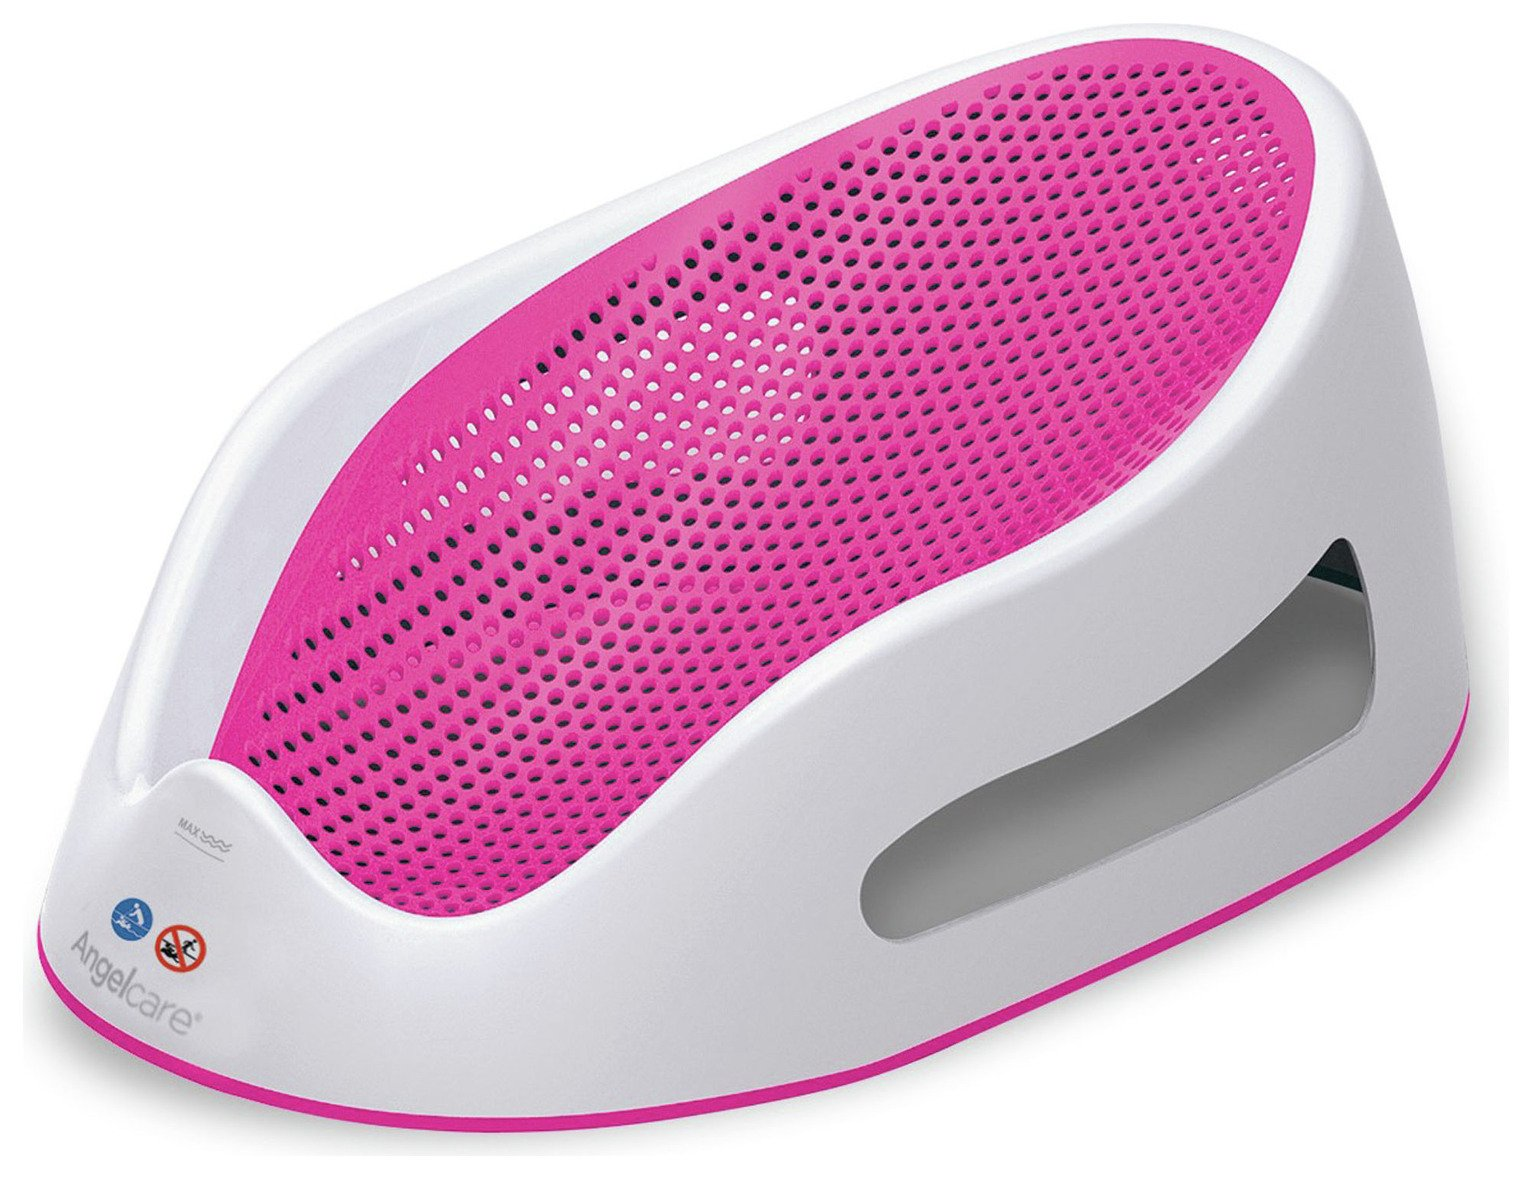 Image of Angelcare Soft-Touch Bath Support - Pink.